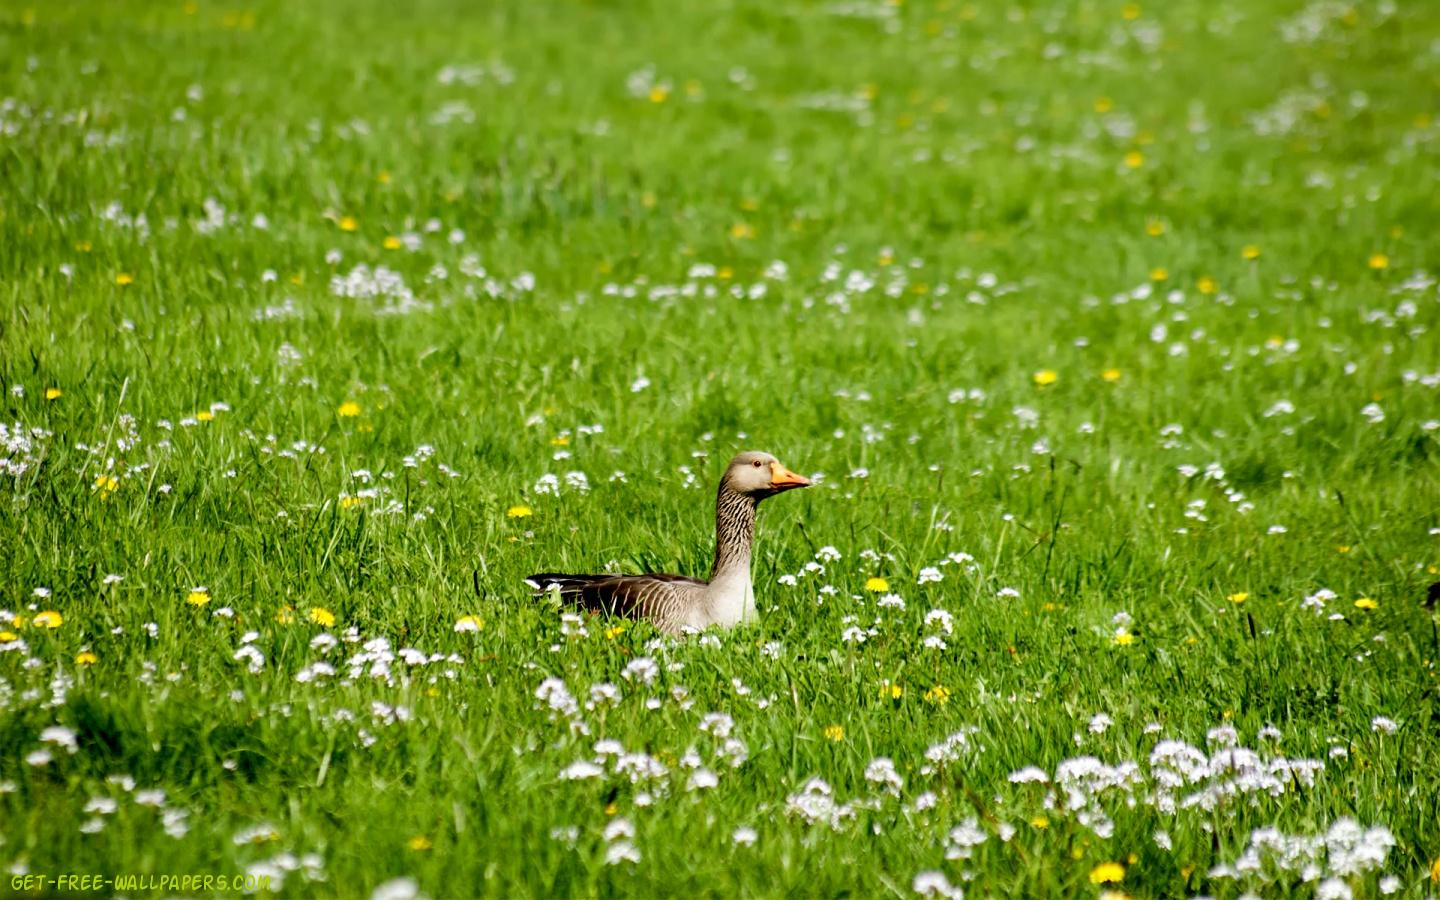 Duck On The Grass 1440X900 Photo